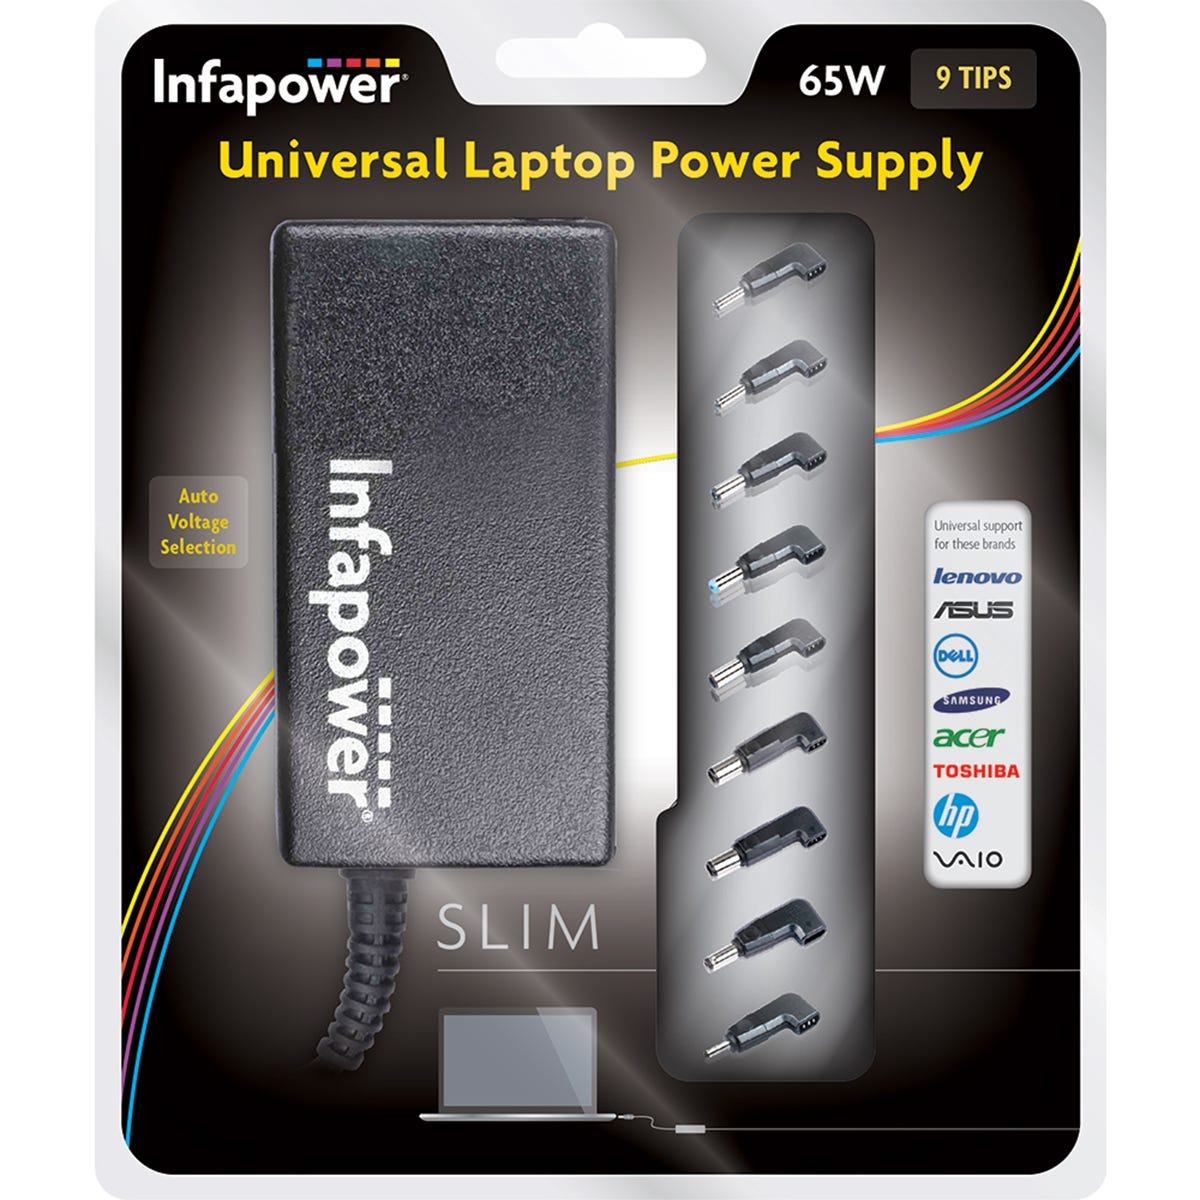 Infapower 65W Universal Laptop Automatic Power Supply